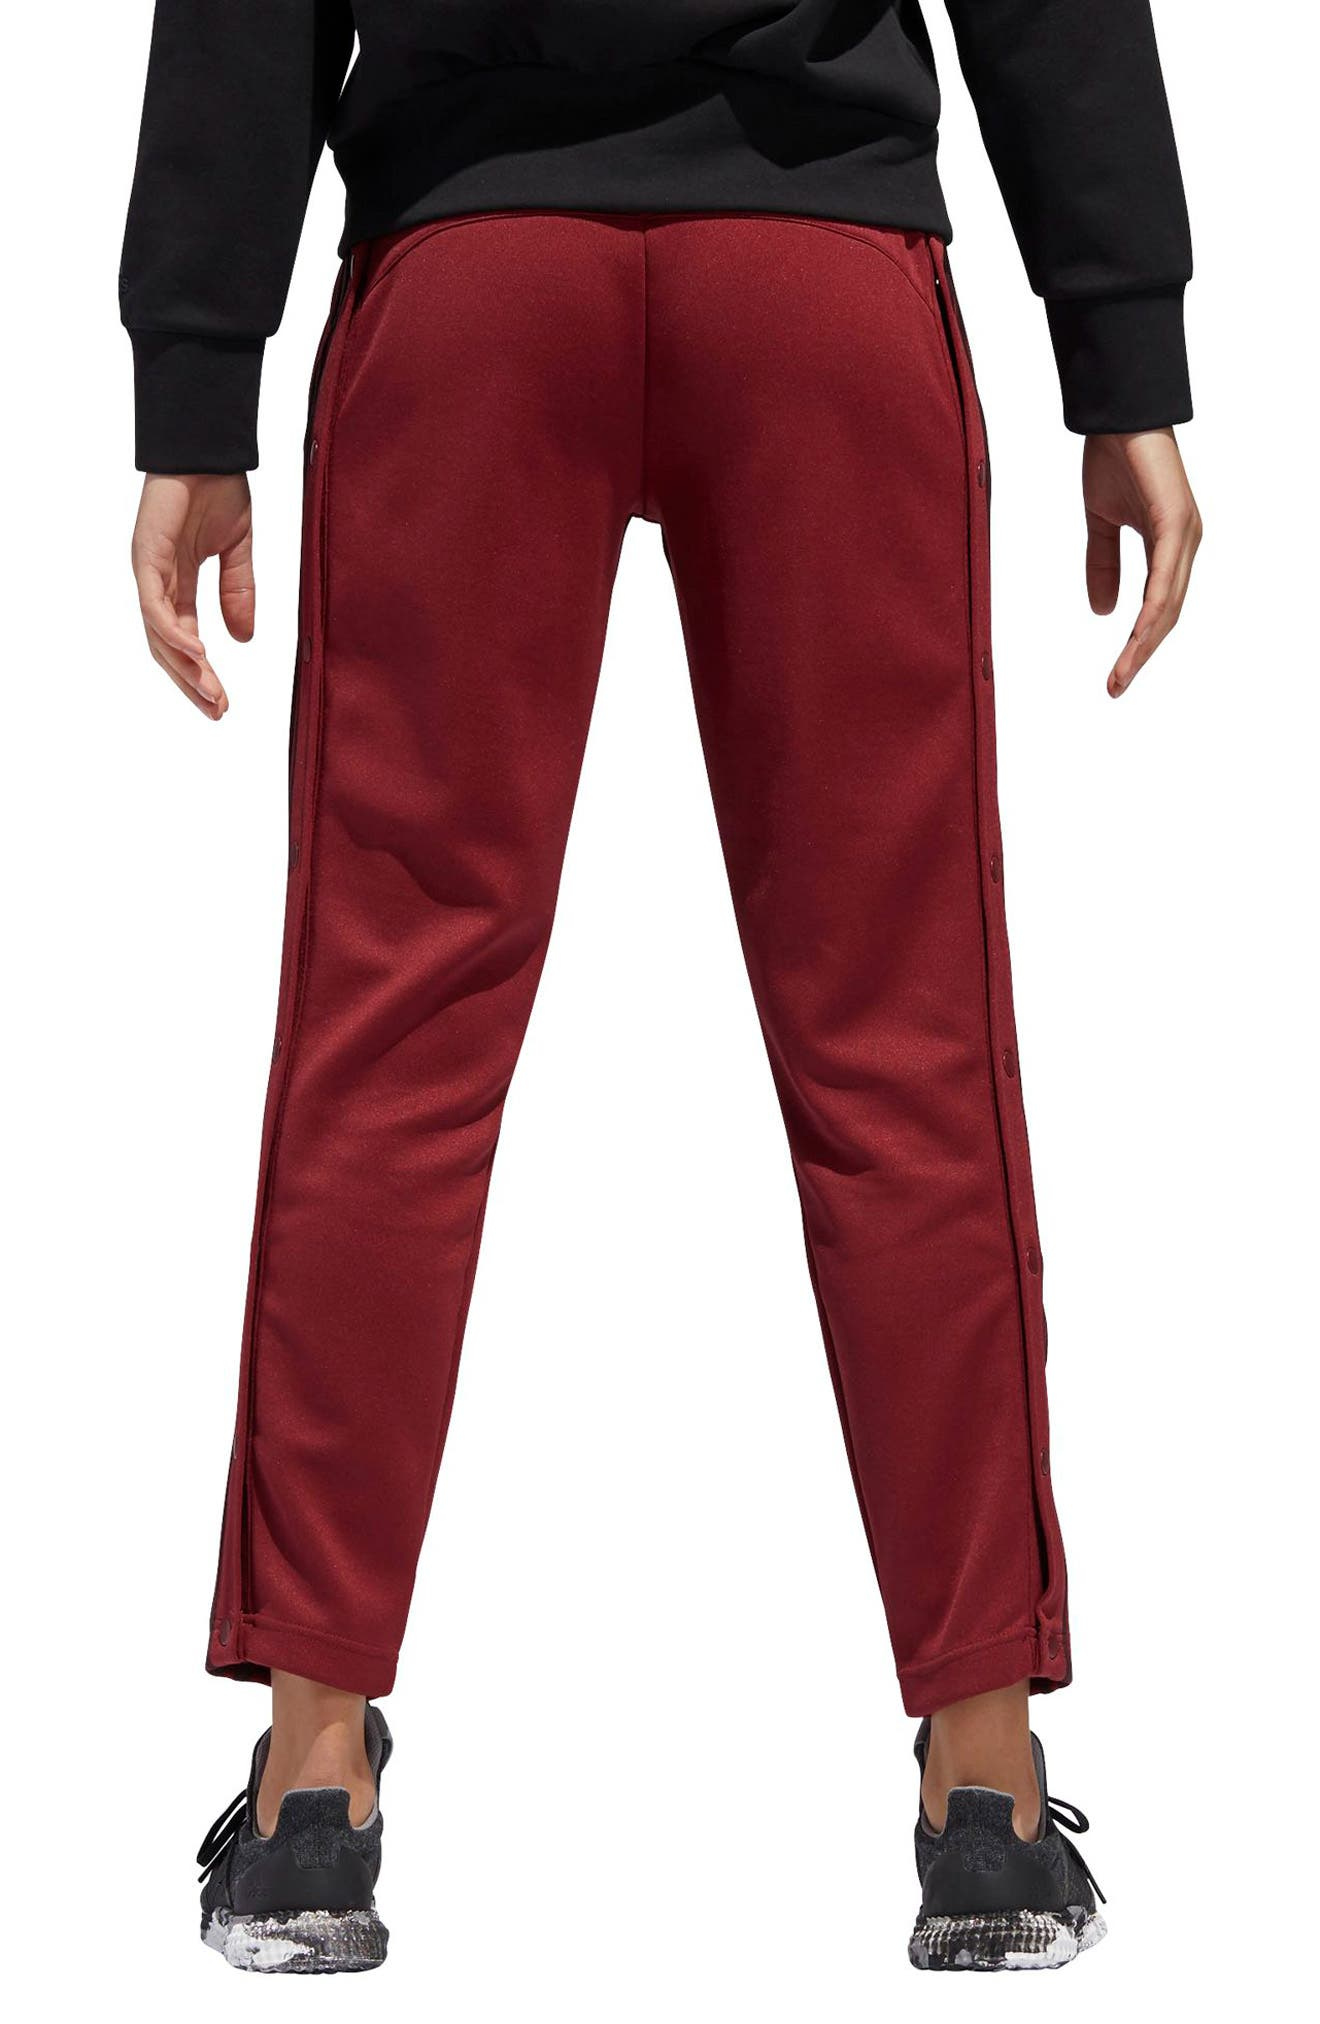 Tricot Snap Pants,                             Alternate thumbnail 3, color,                             NOBLE MAROON/ NIGHT RED